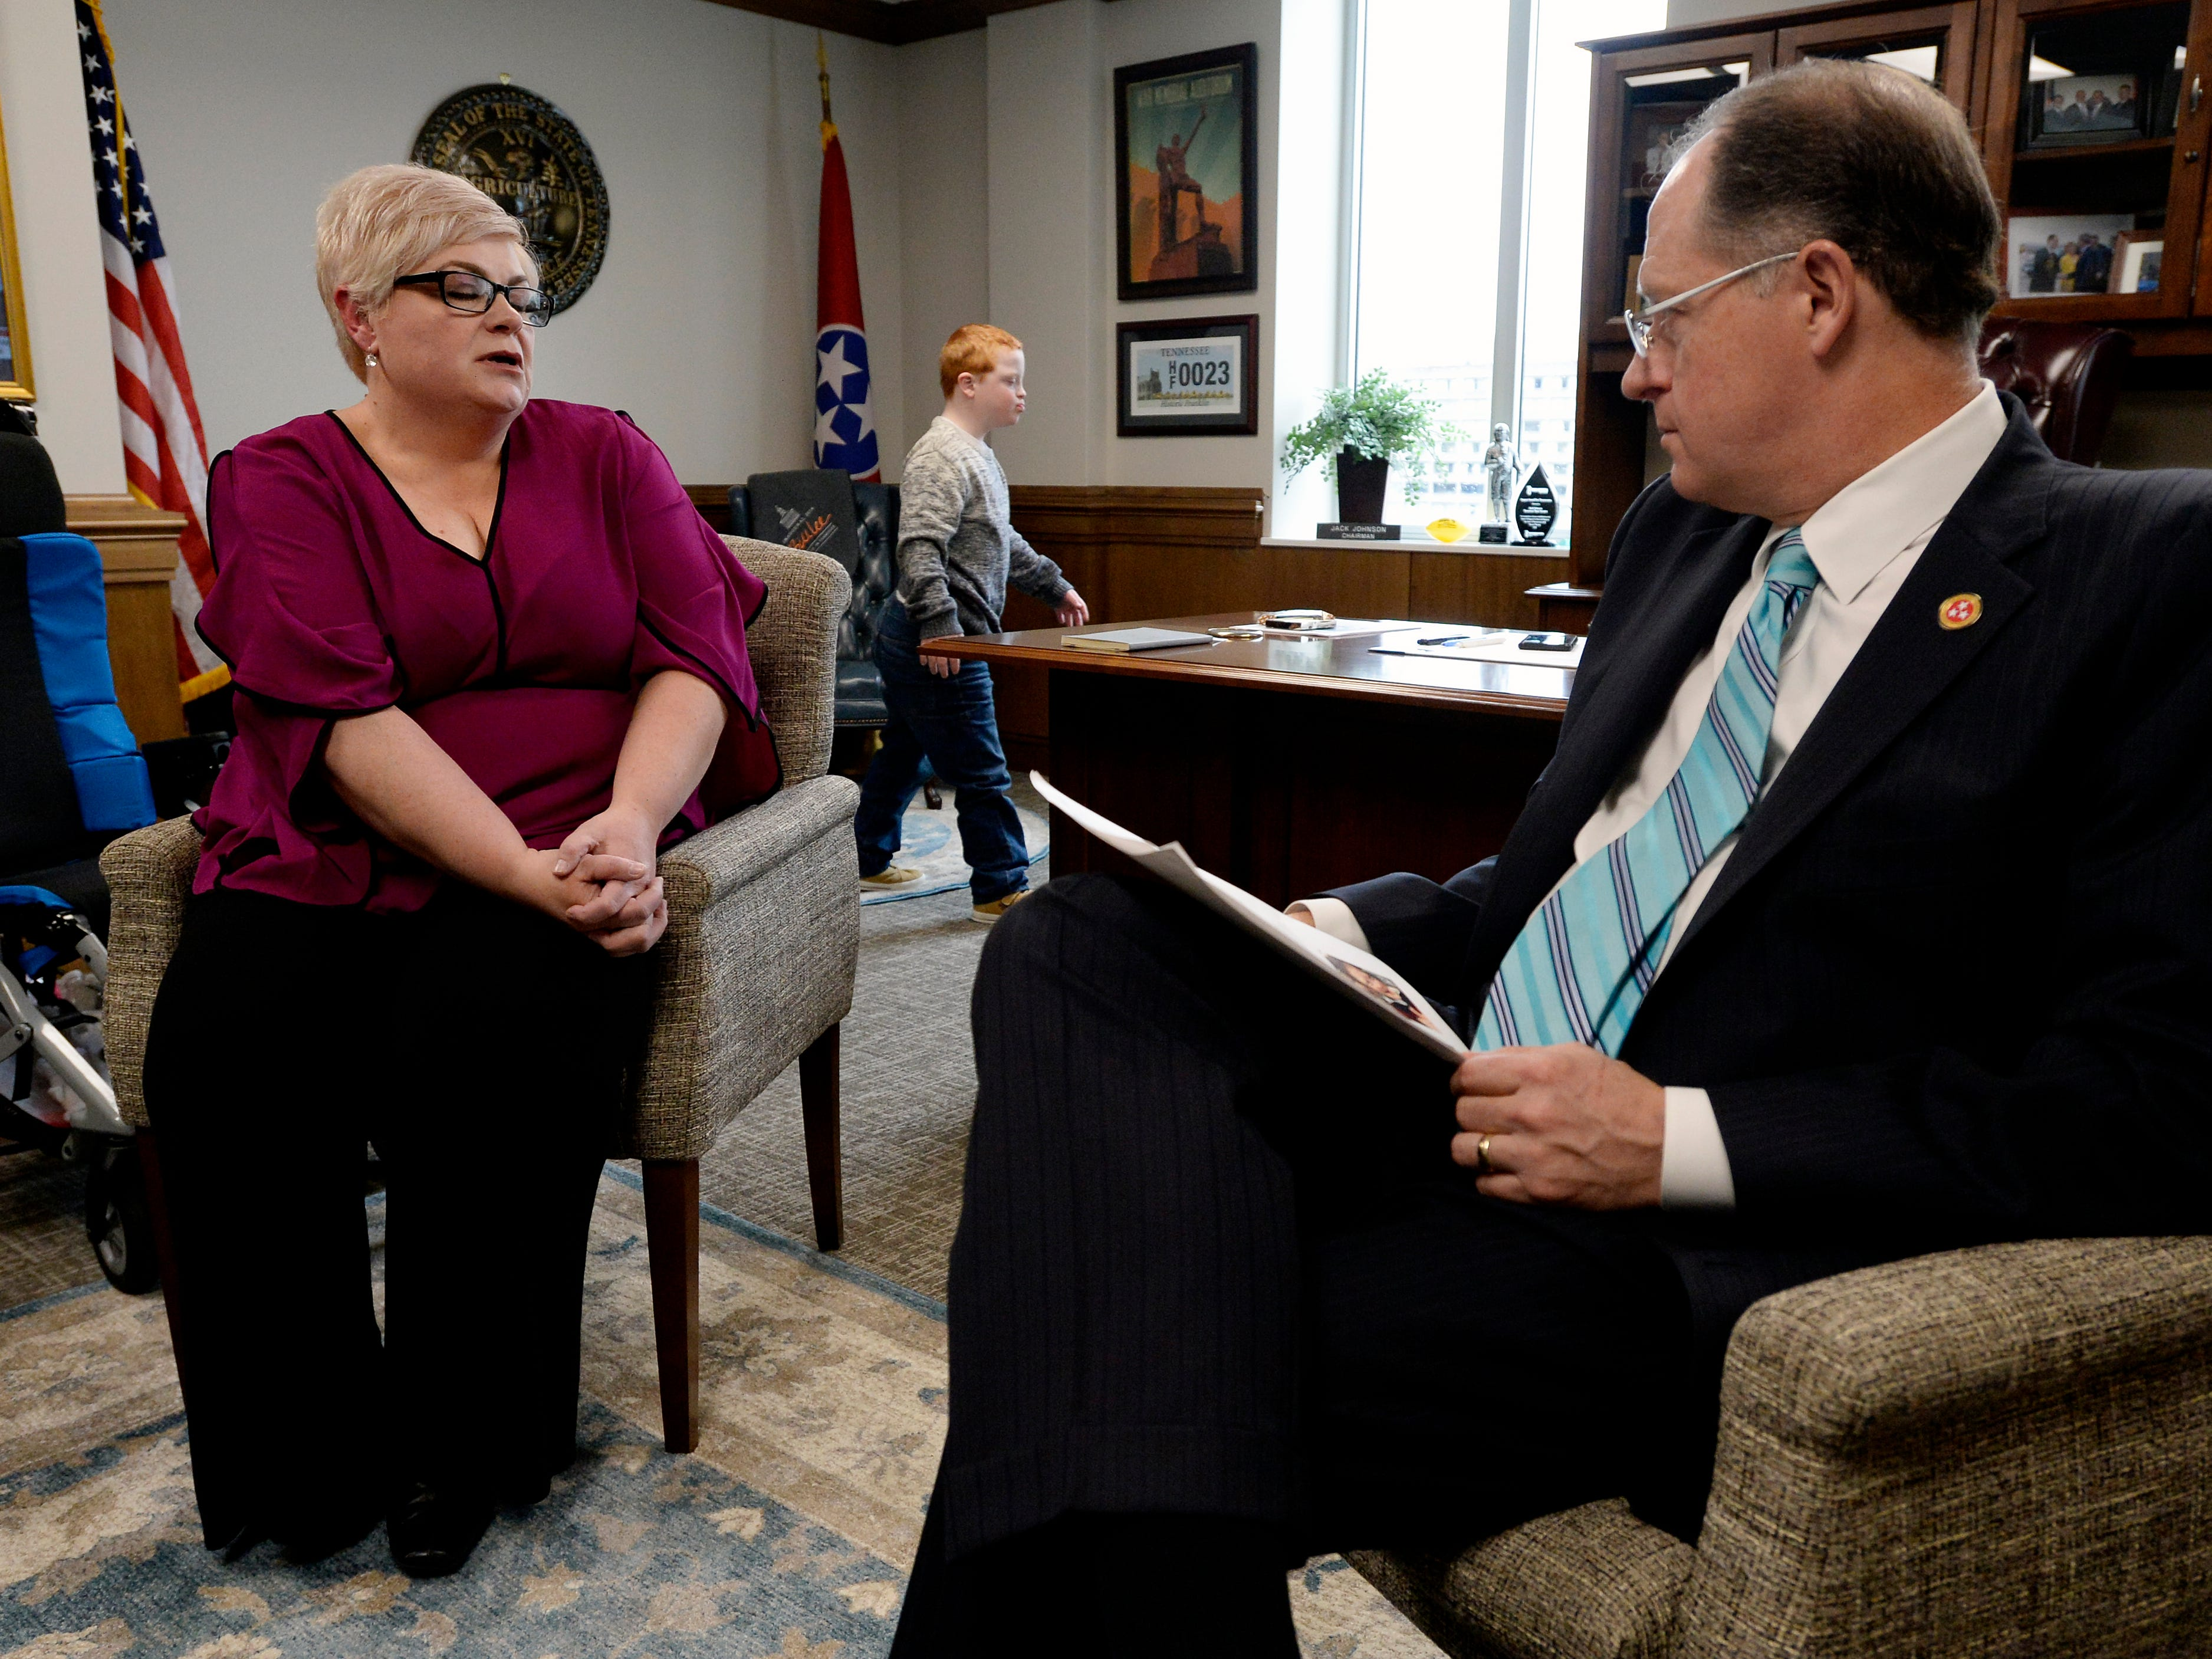 Single mother Jennifer Schultz talks with  Tennessee State Senate Majority Leader Jack Johnson as Hatcher Ryan Schultz, 10, who has Down syndrome, walks around his office during Disability Day on the Hill Tuesday, Feb. 12, 2019, in Nashville, Tenn. Families and advocates of people with disabilities in Tennessee met with lawmakers to express concerns and the needs of the disabled in the state.